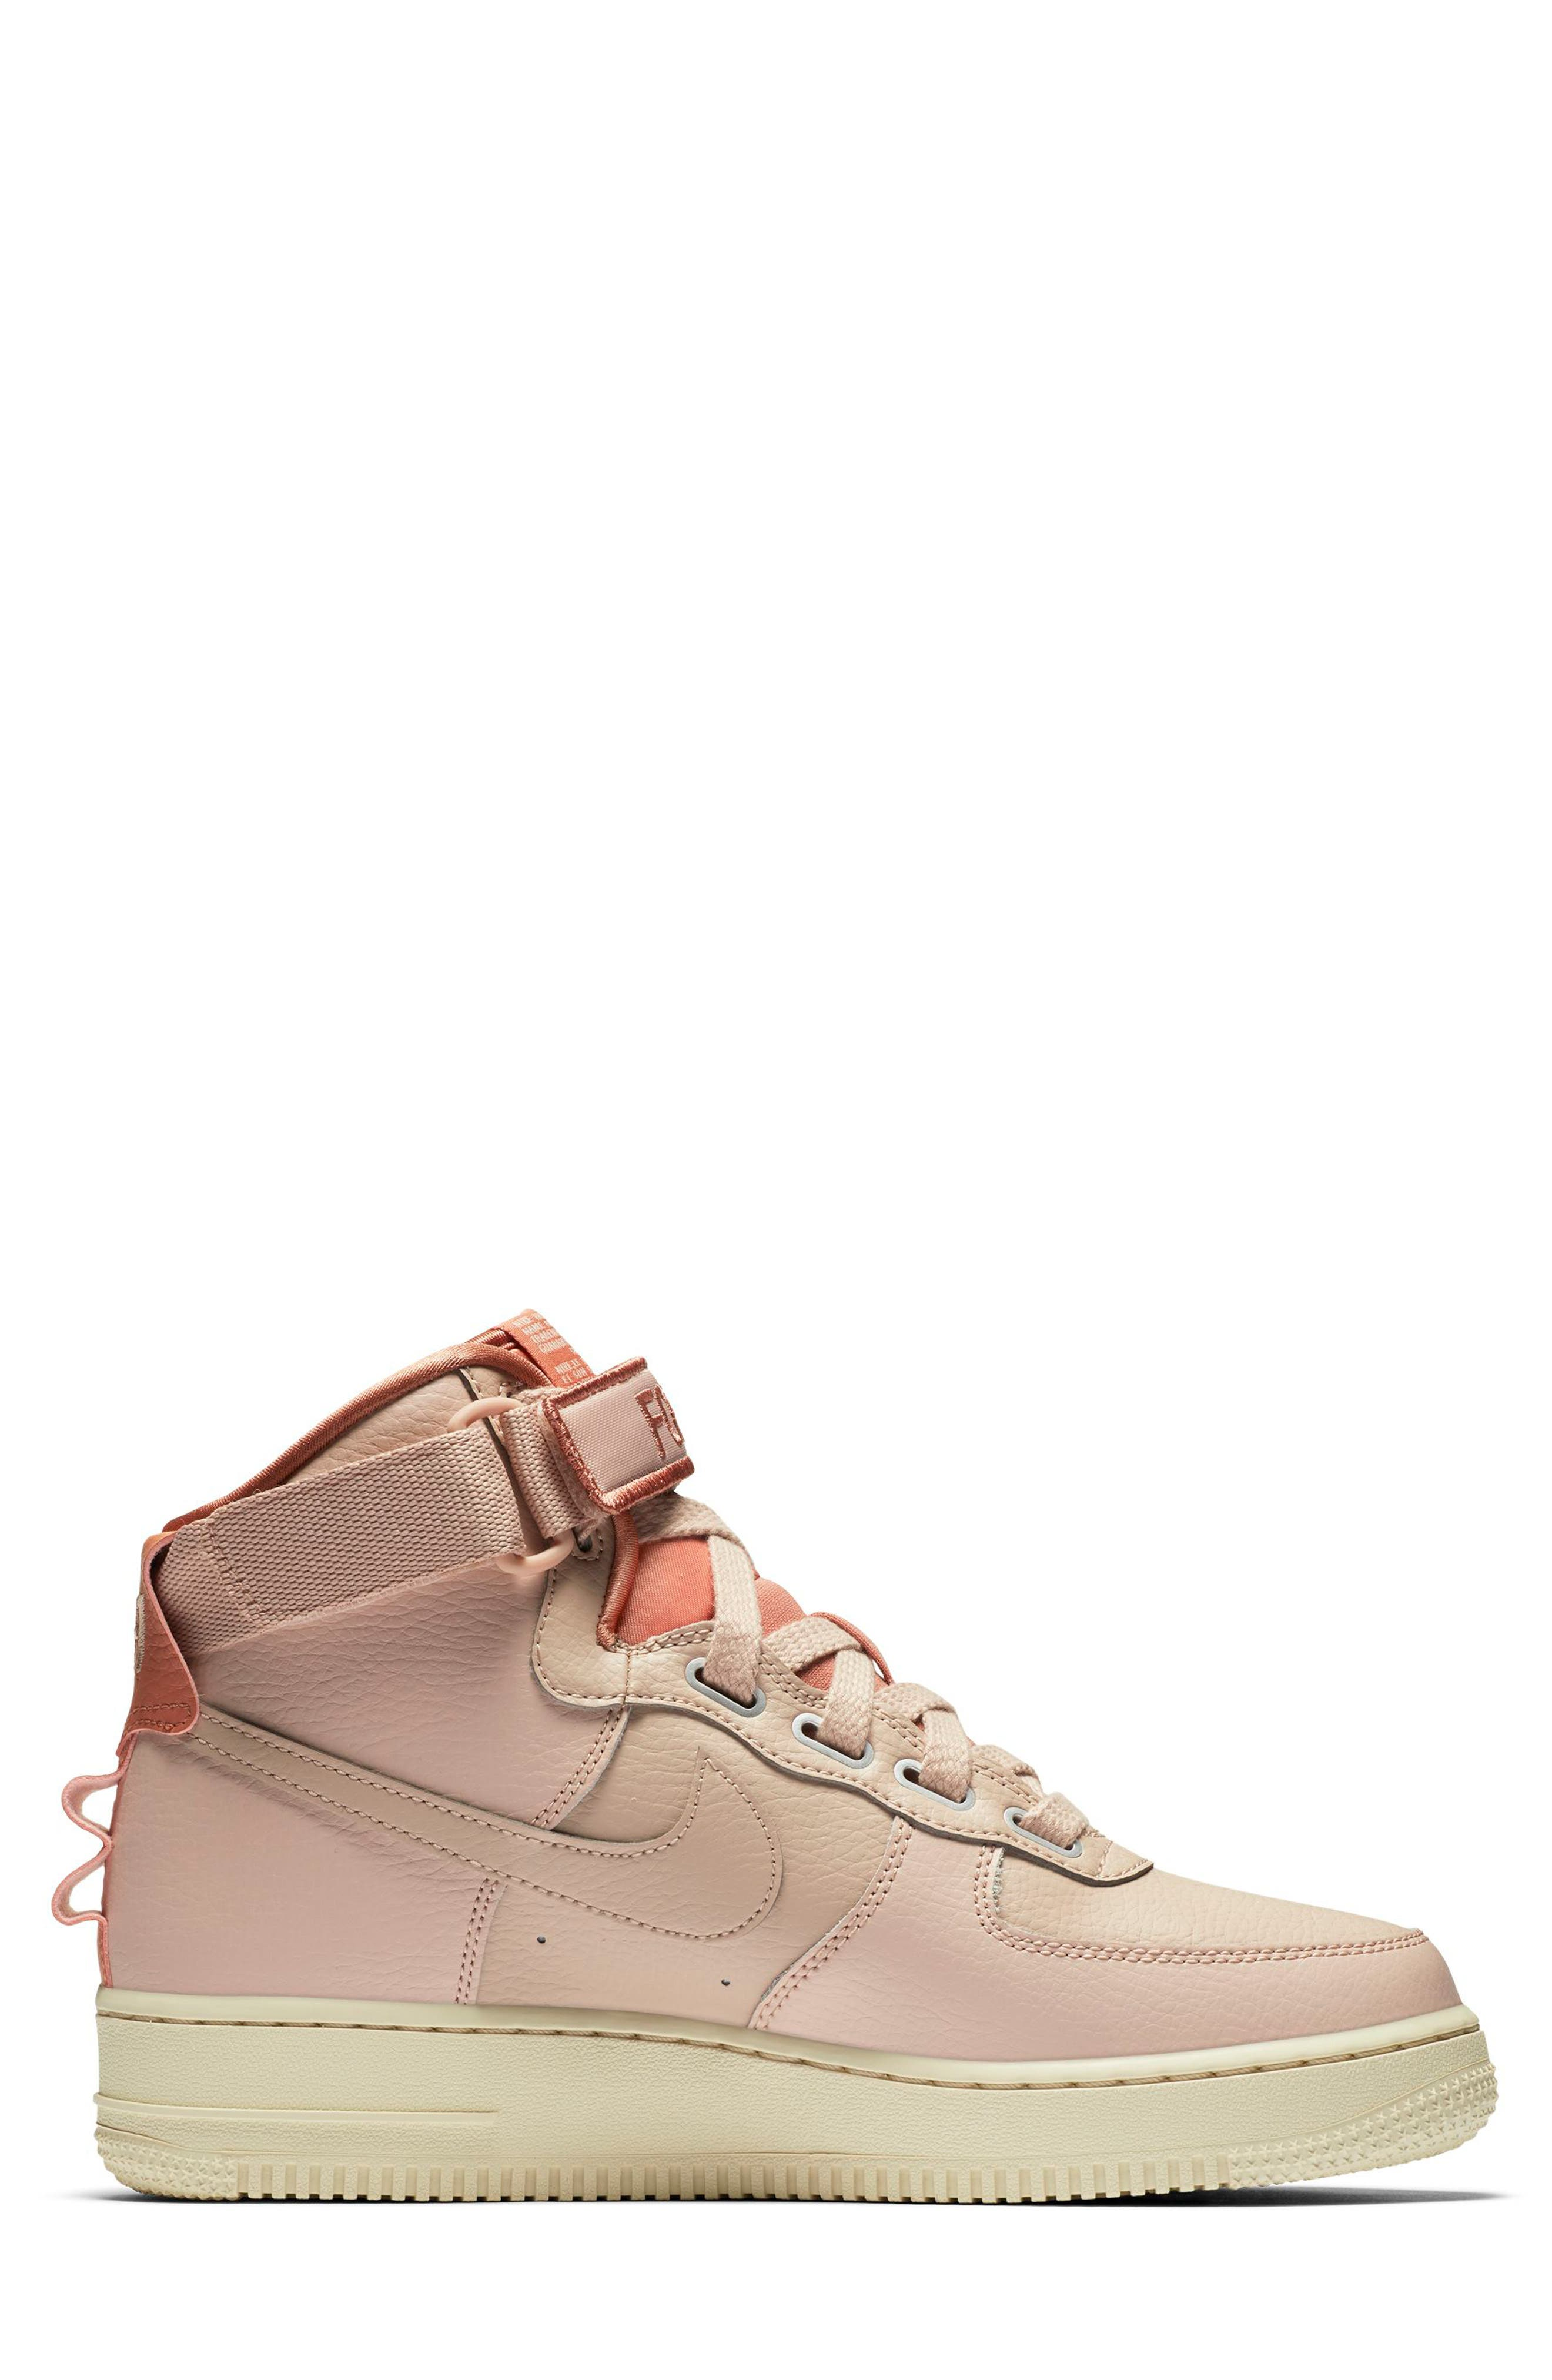 NIKE, Air Force 1 High Utility Sneaker, Alternate thumbnail 6, color, 200